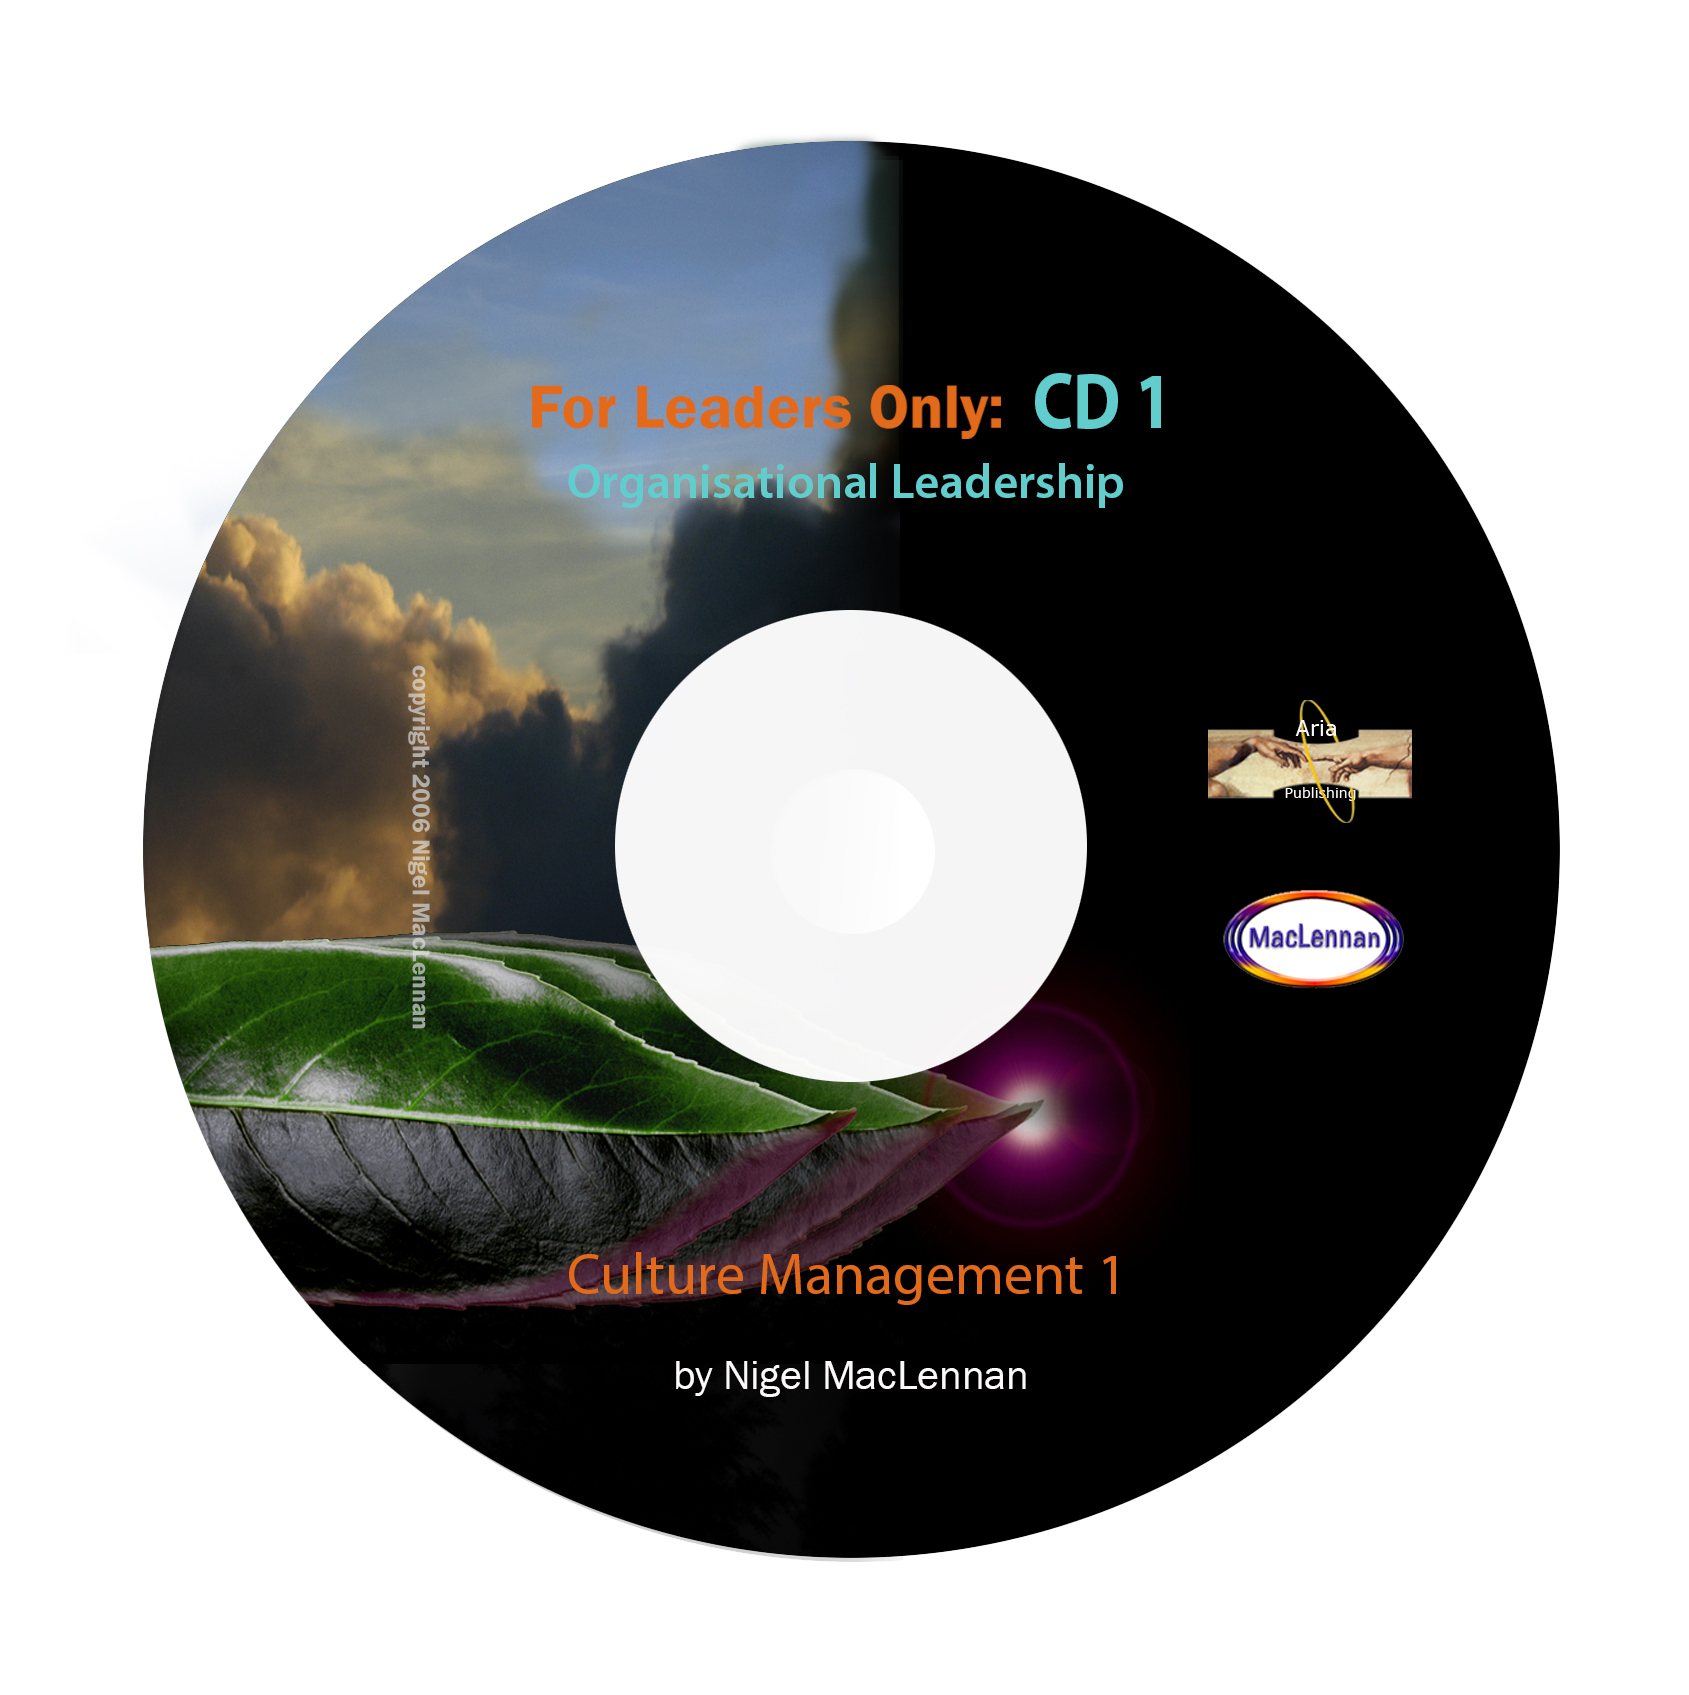 For Leaders Only - Culture Management 1 CD